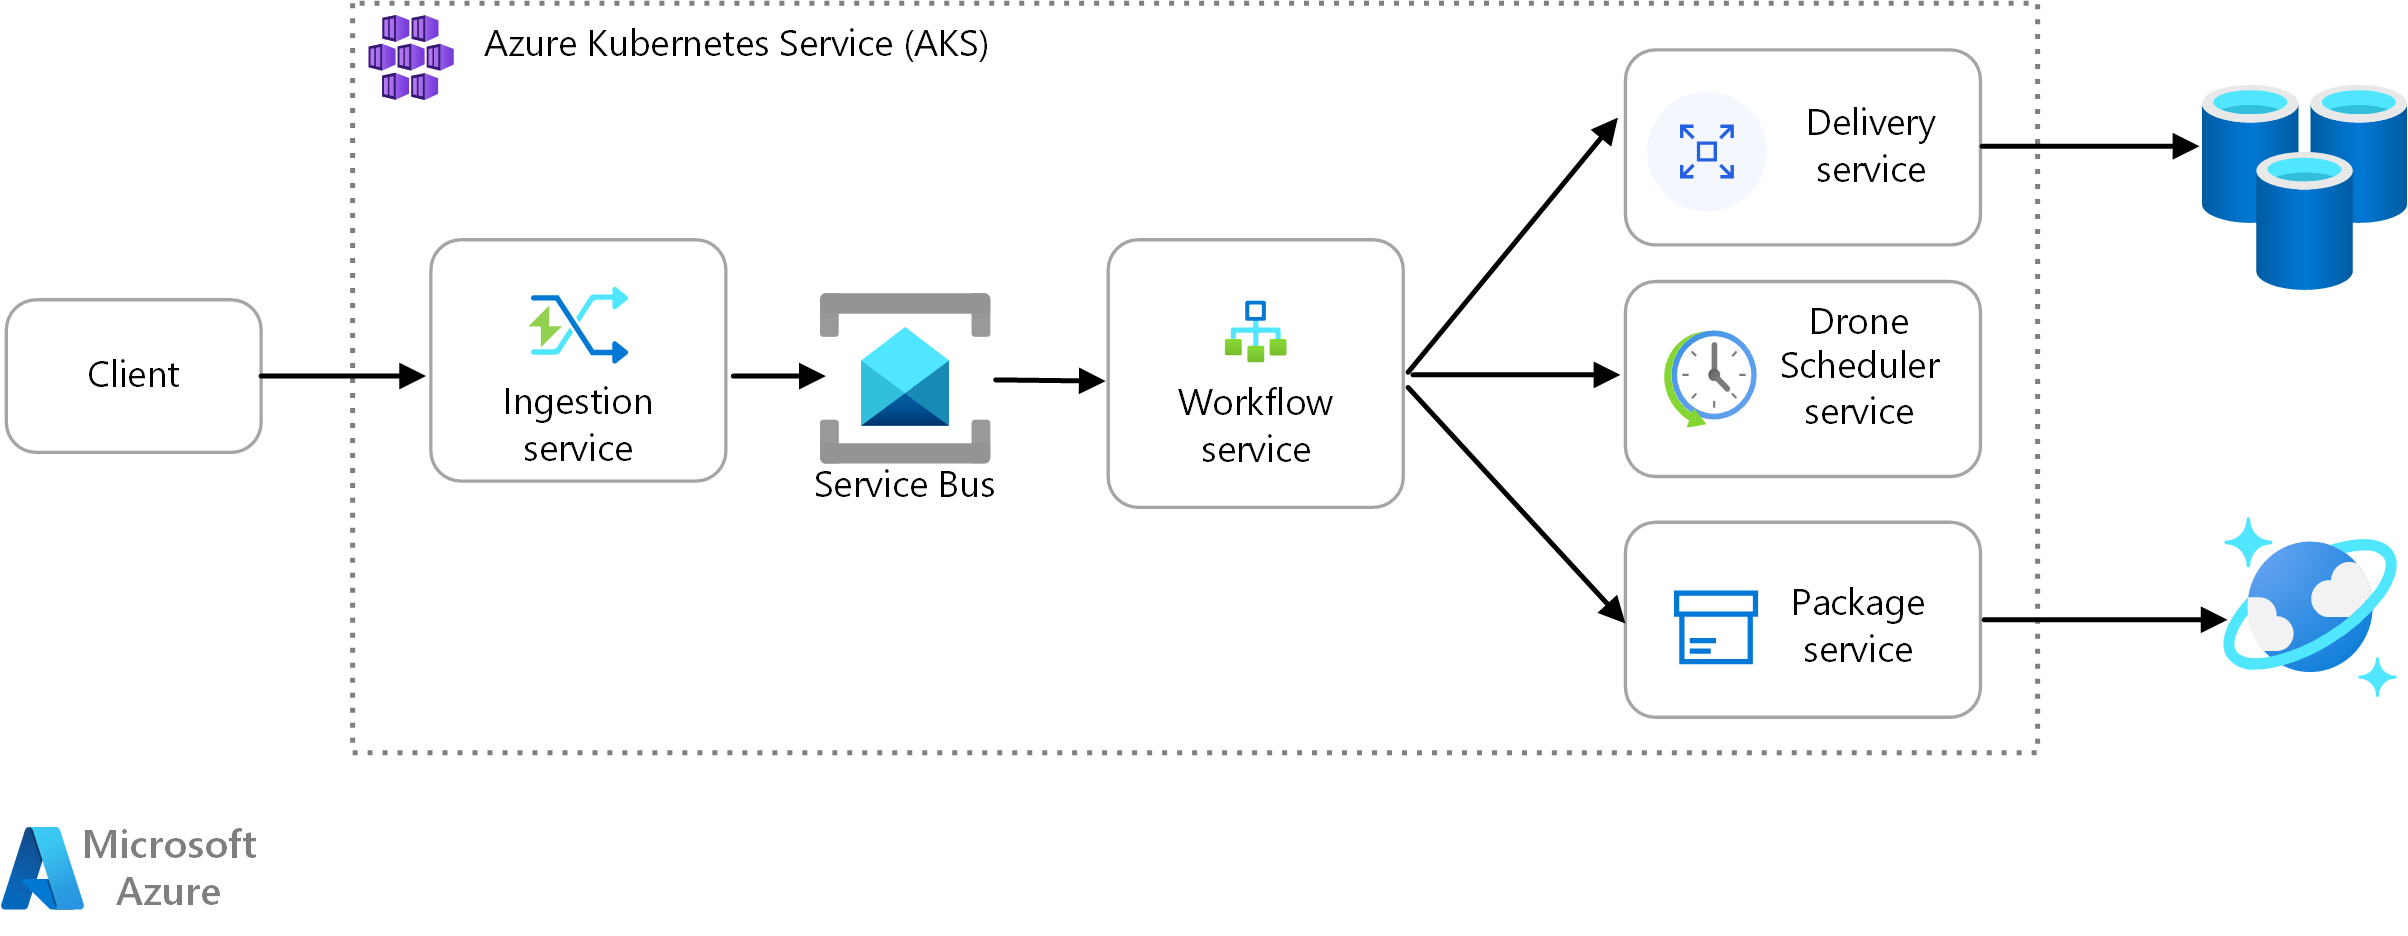 Monitoring a microservices architecture in Azure Kubernetes